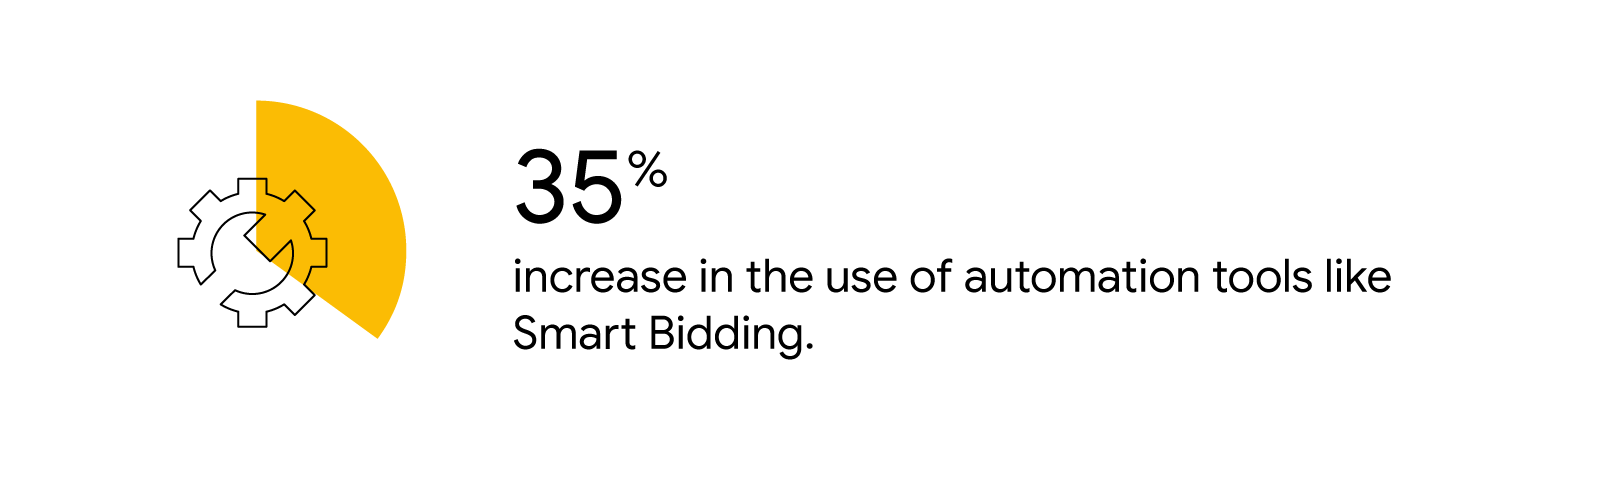 A yellow pie chart wedge indicating 35% is overlaid on an illustrated gear icon. Text reads: 35% increase in the use of automation tools like Smart Bidding.